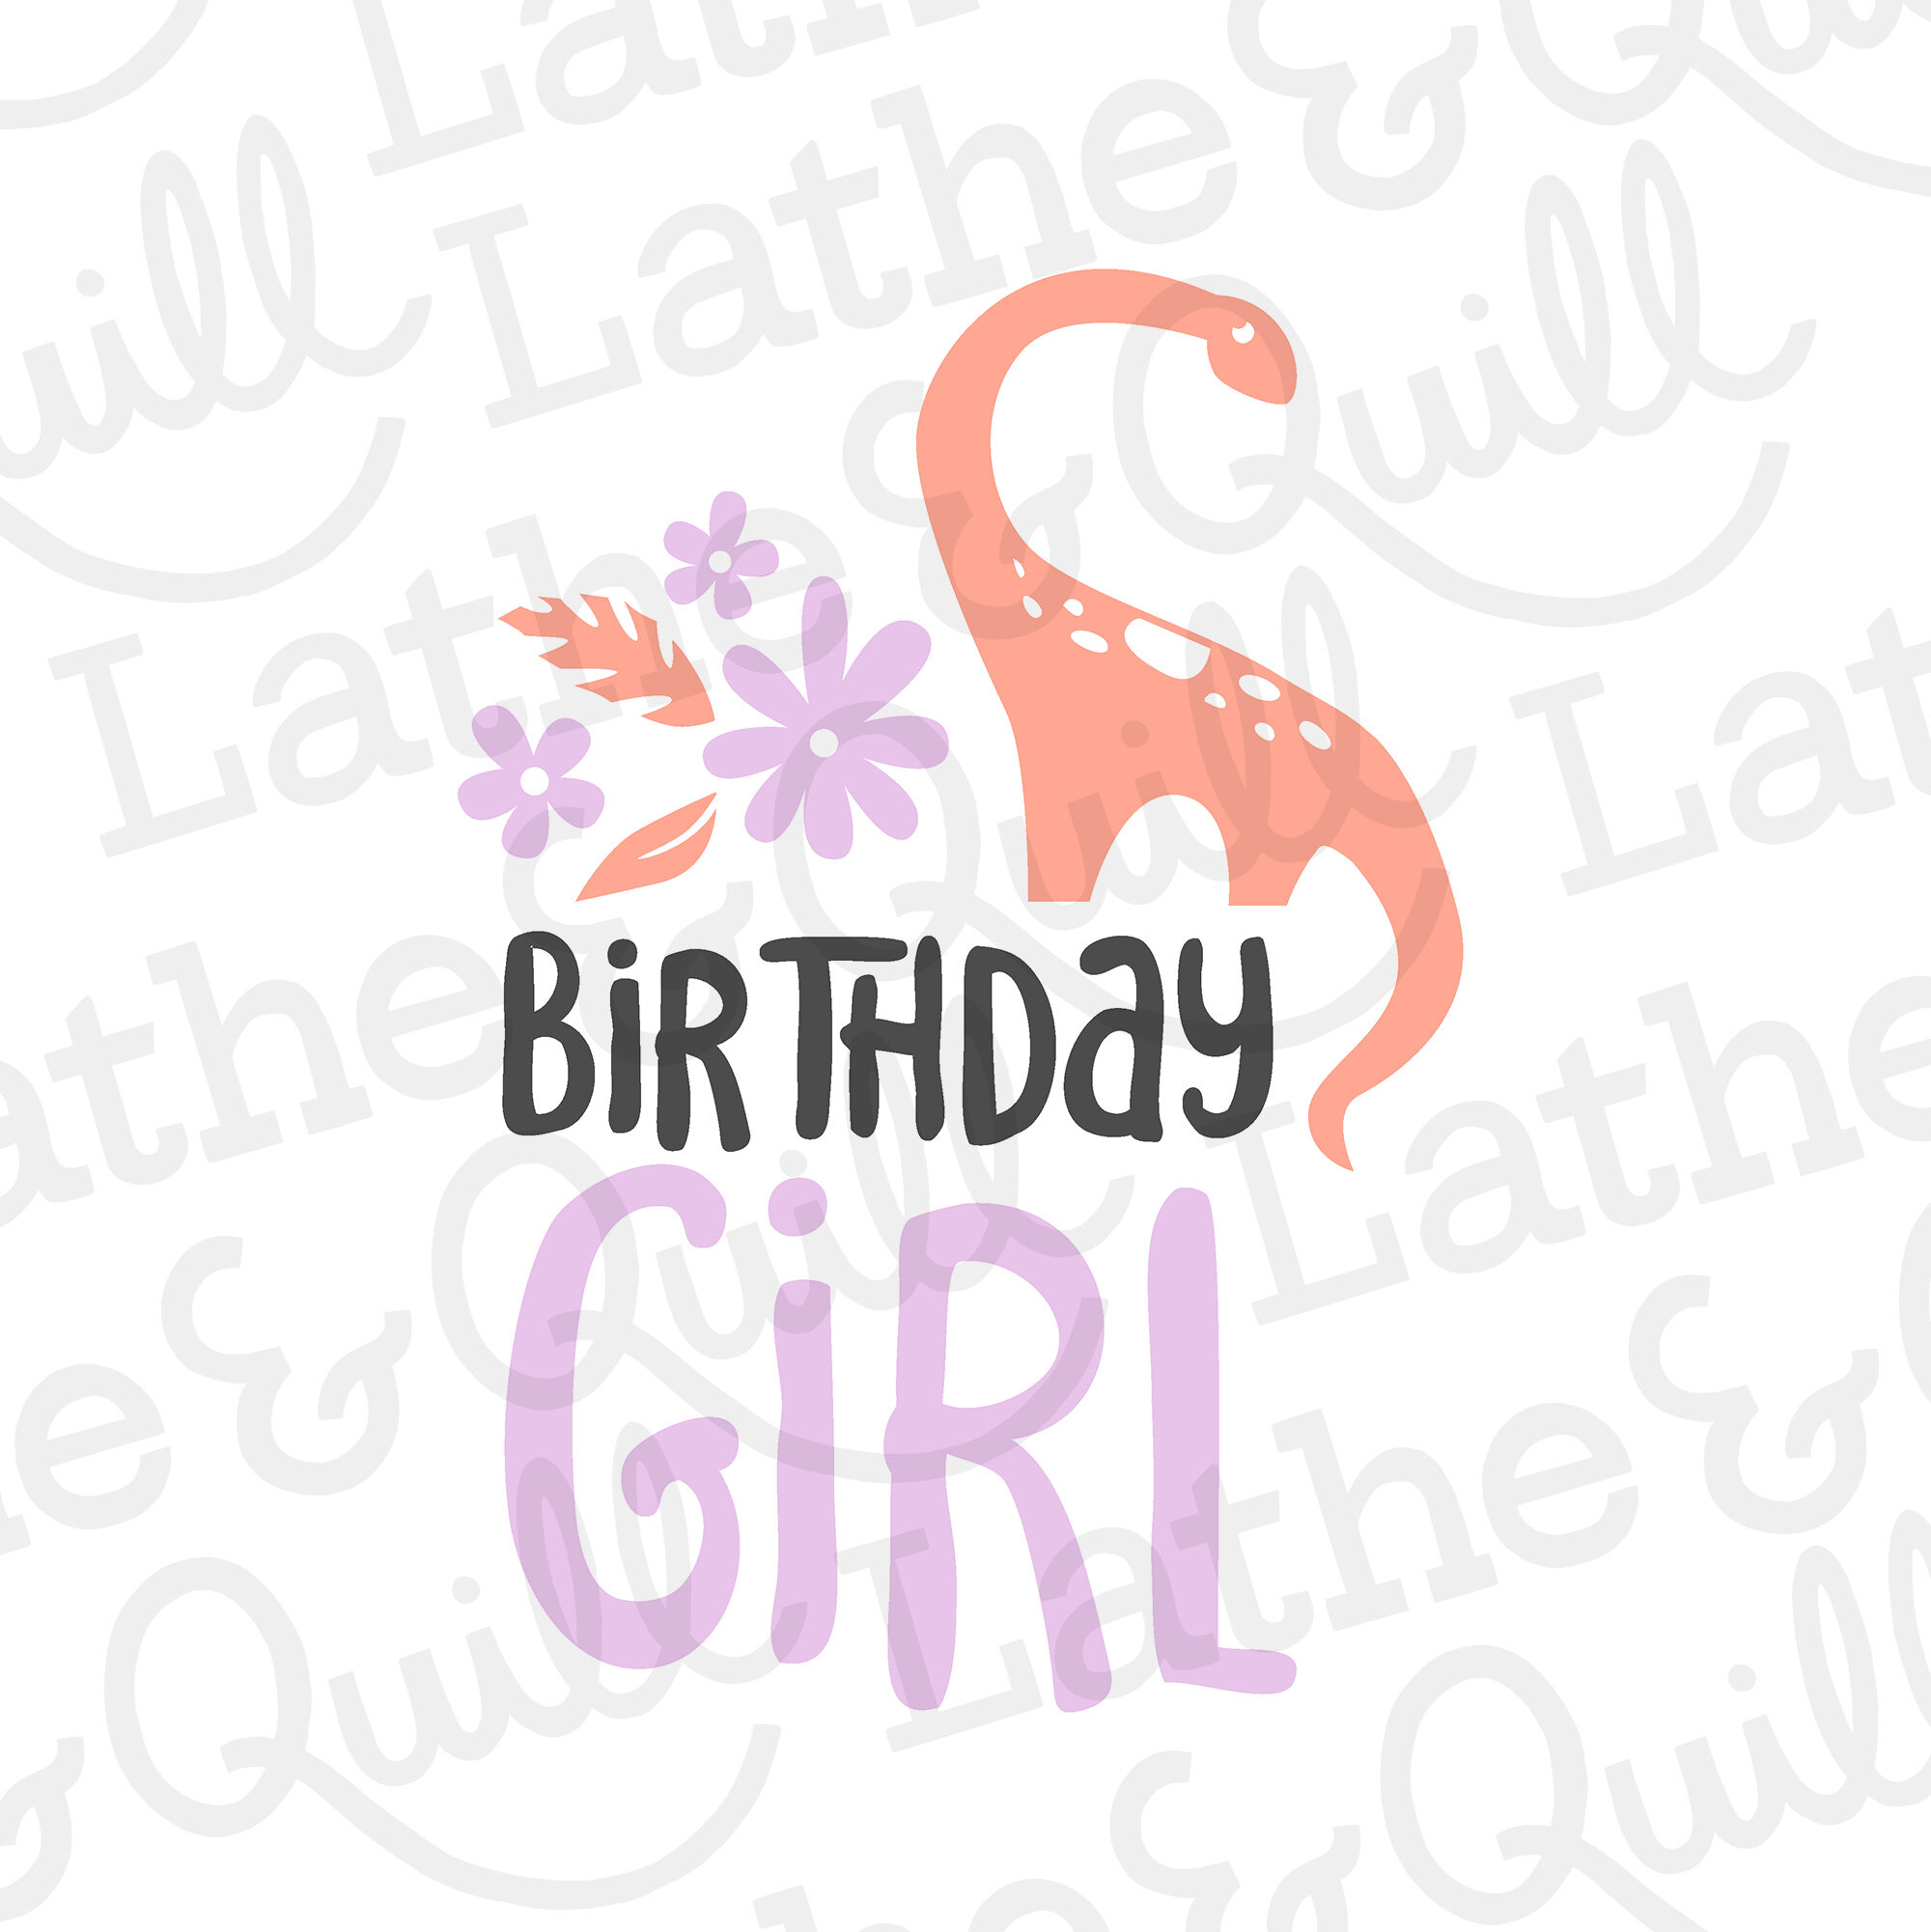 Celebrate the Birthday girl in style with her own custom t-shirt featuring our kawaii brontosaurus. Perfect for vinyl t-shirts or signage for your birthday party